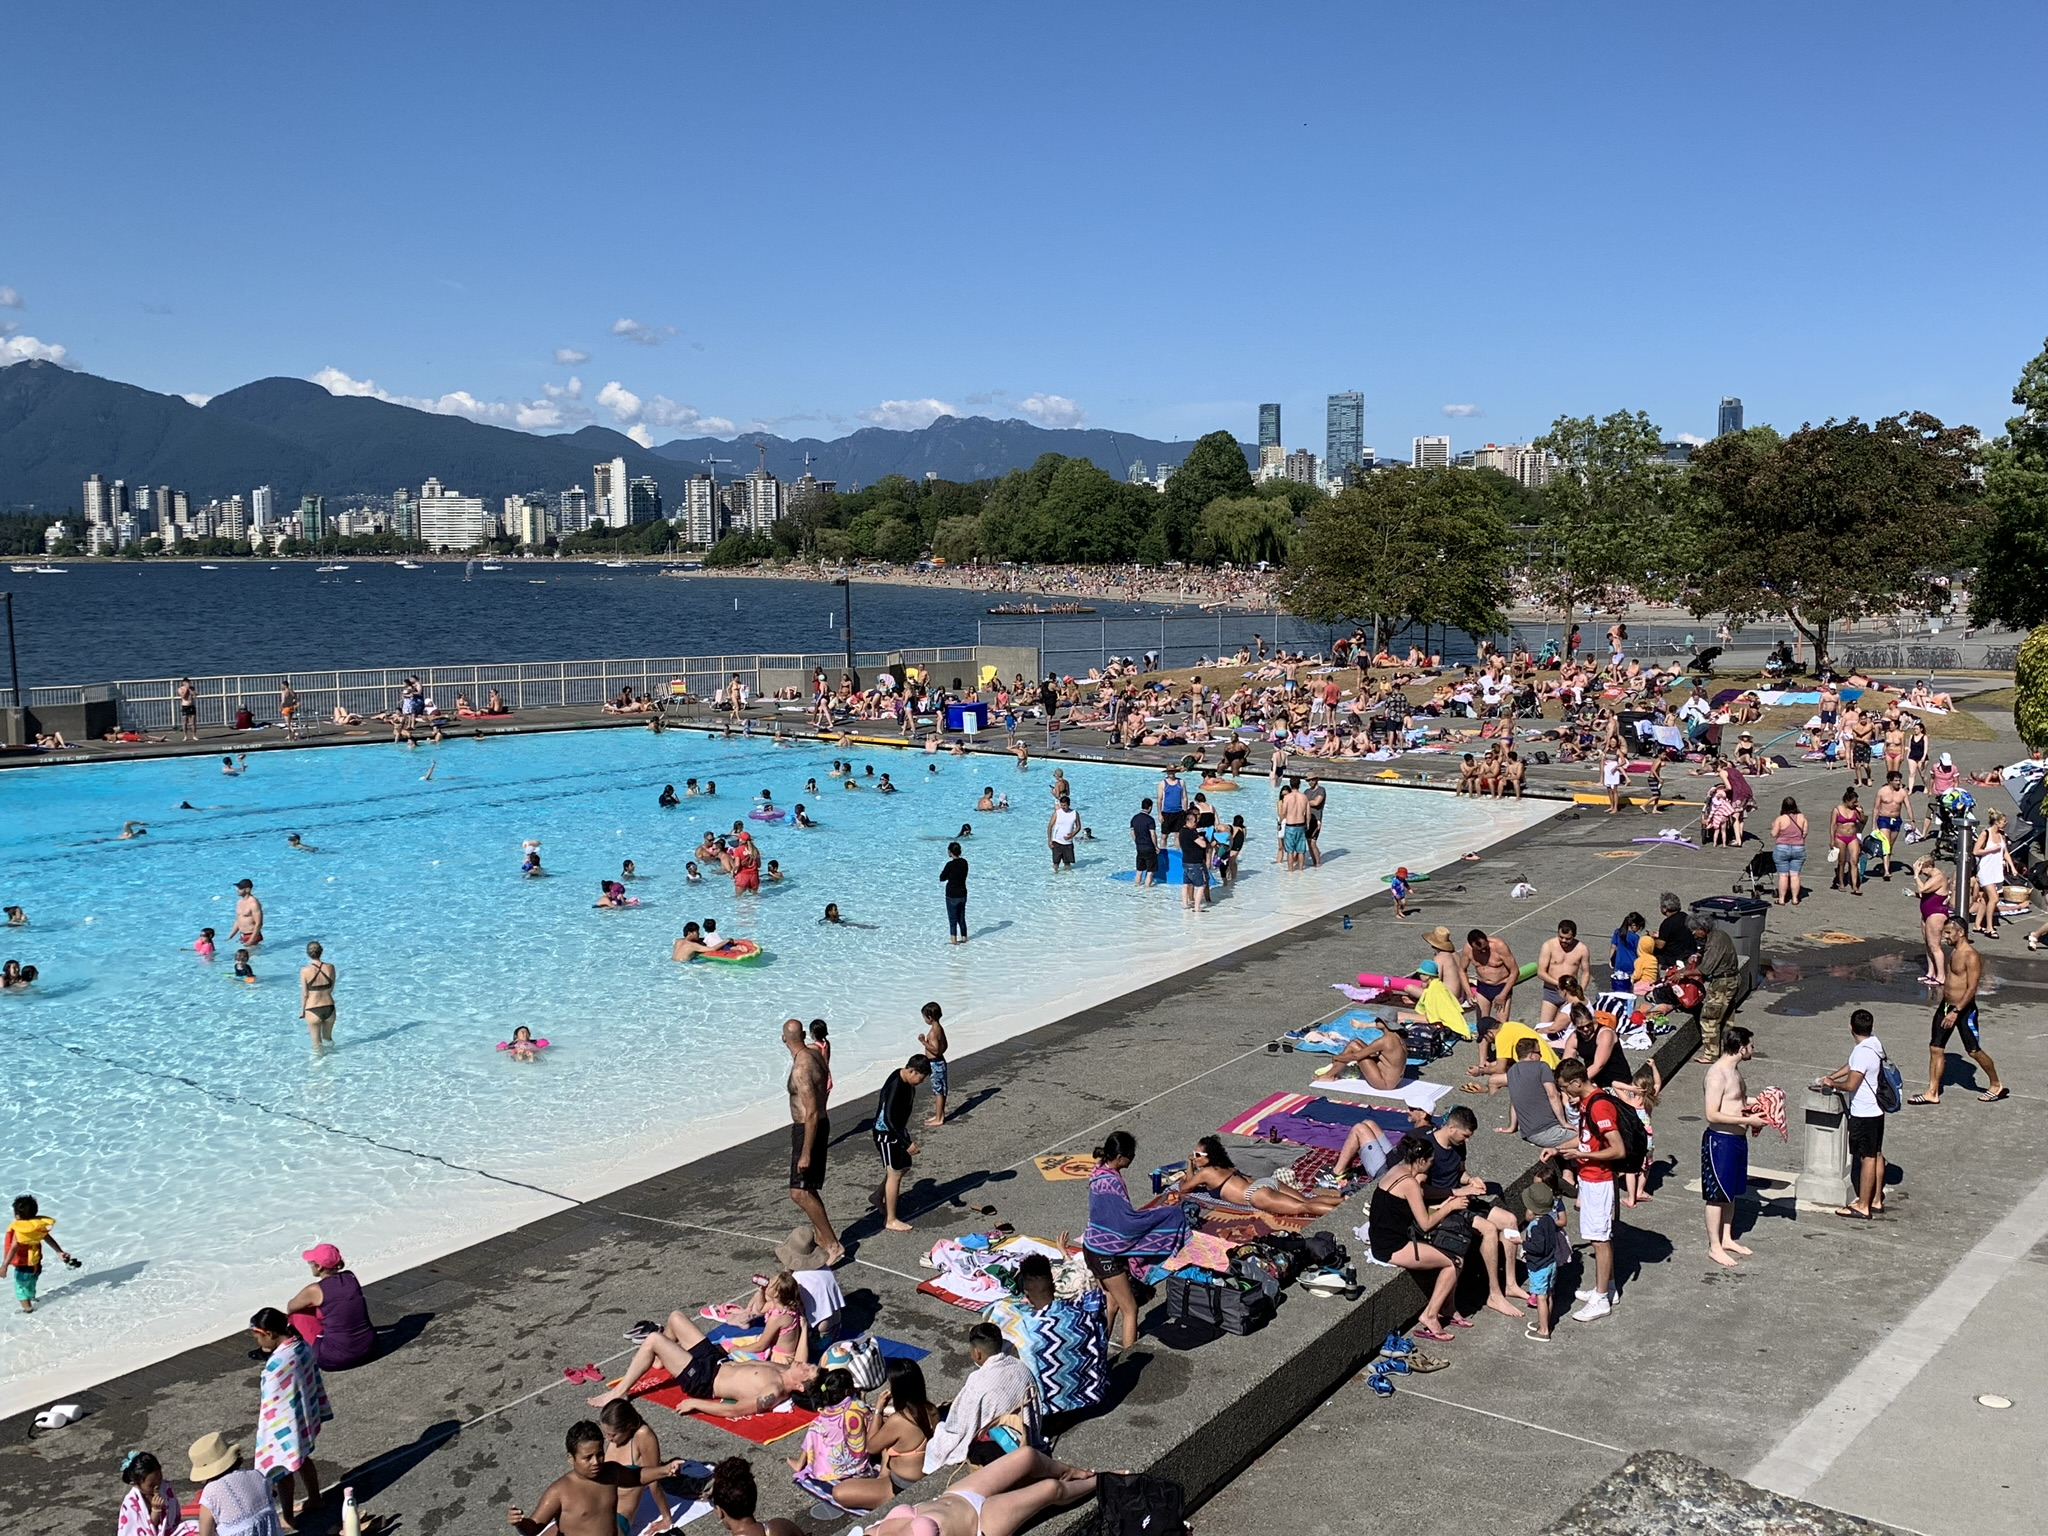 A busy summer day at Kits Pool, Vancouver